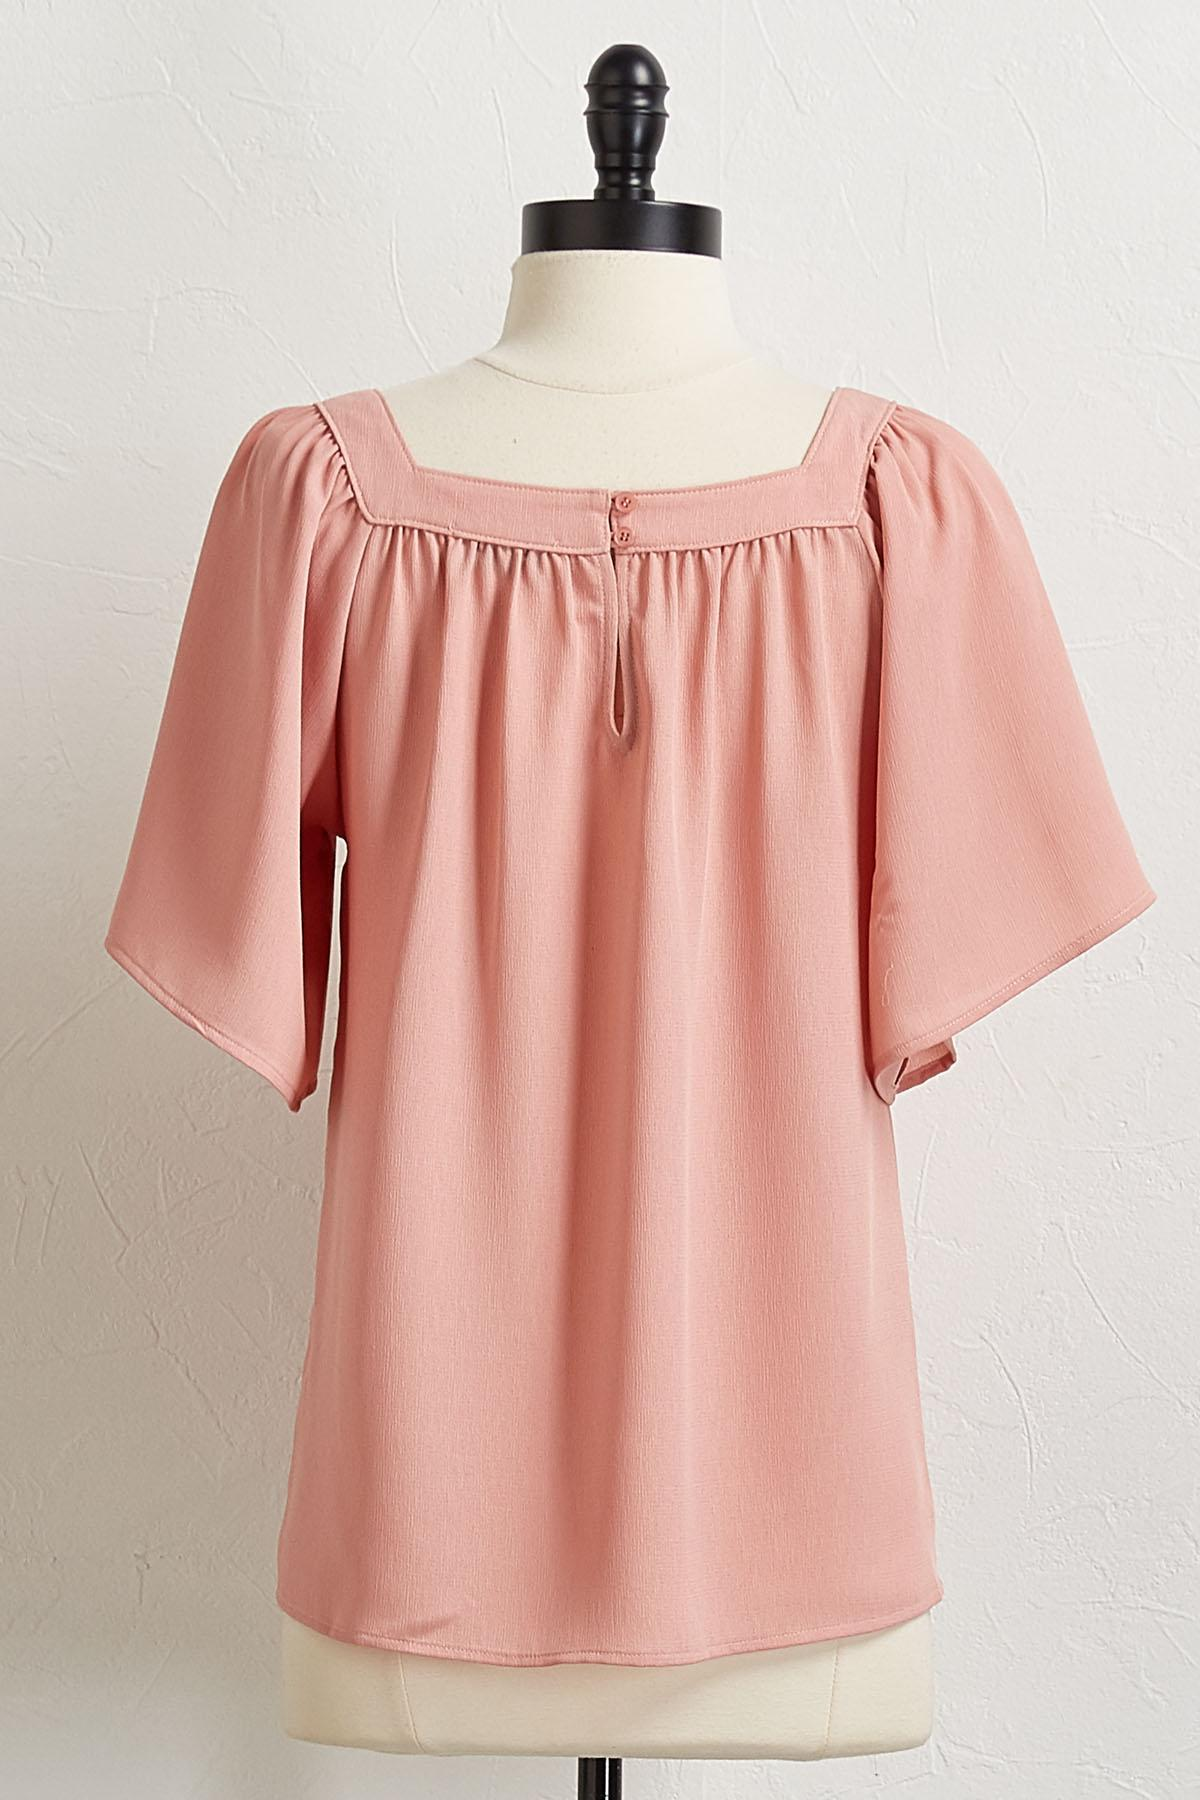 Textured Blush Top